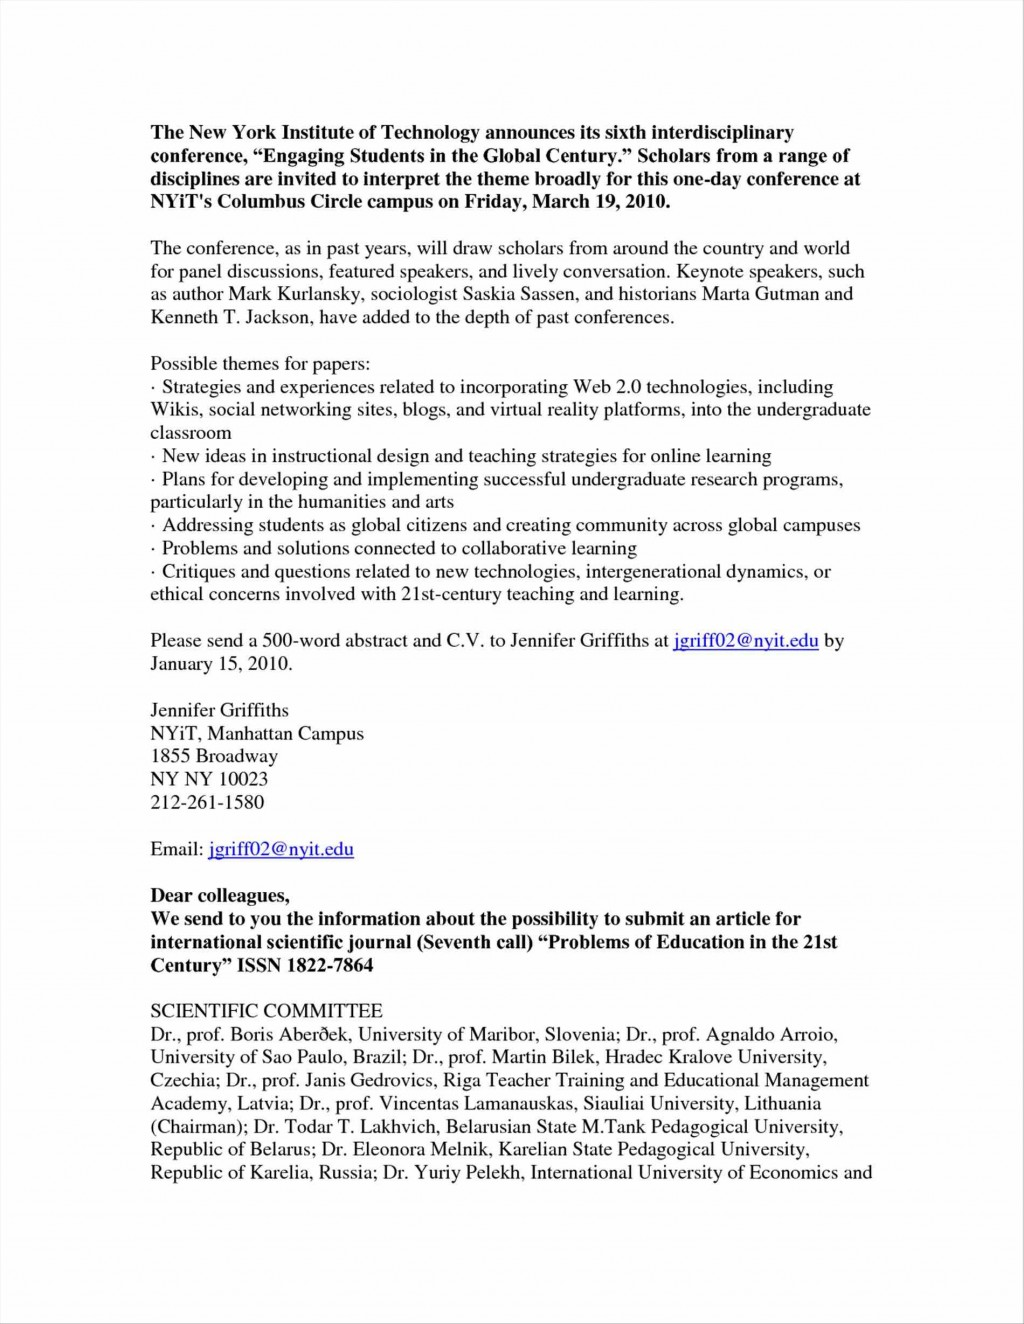 008 Apa Style Research Paper Template Format Soapn Example Of L How To Write Magnificent A Outline Large